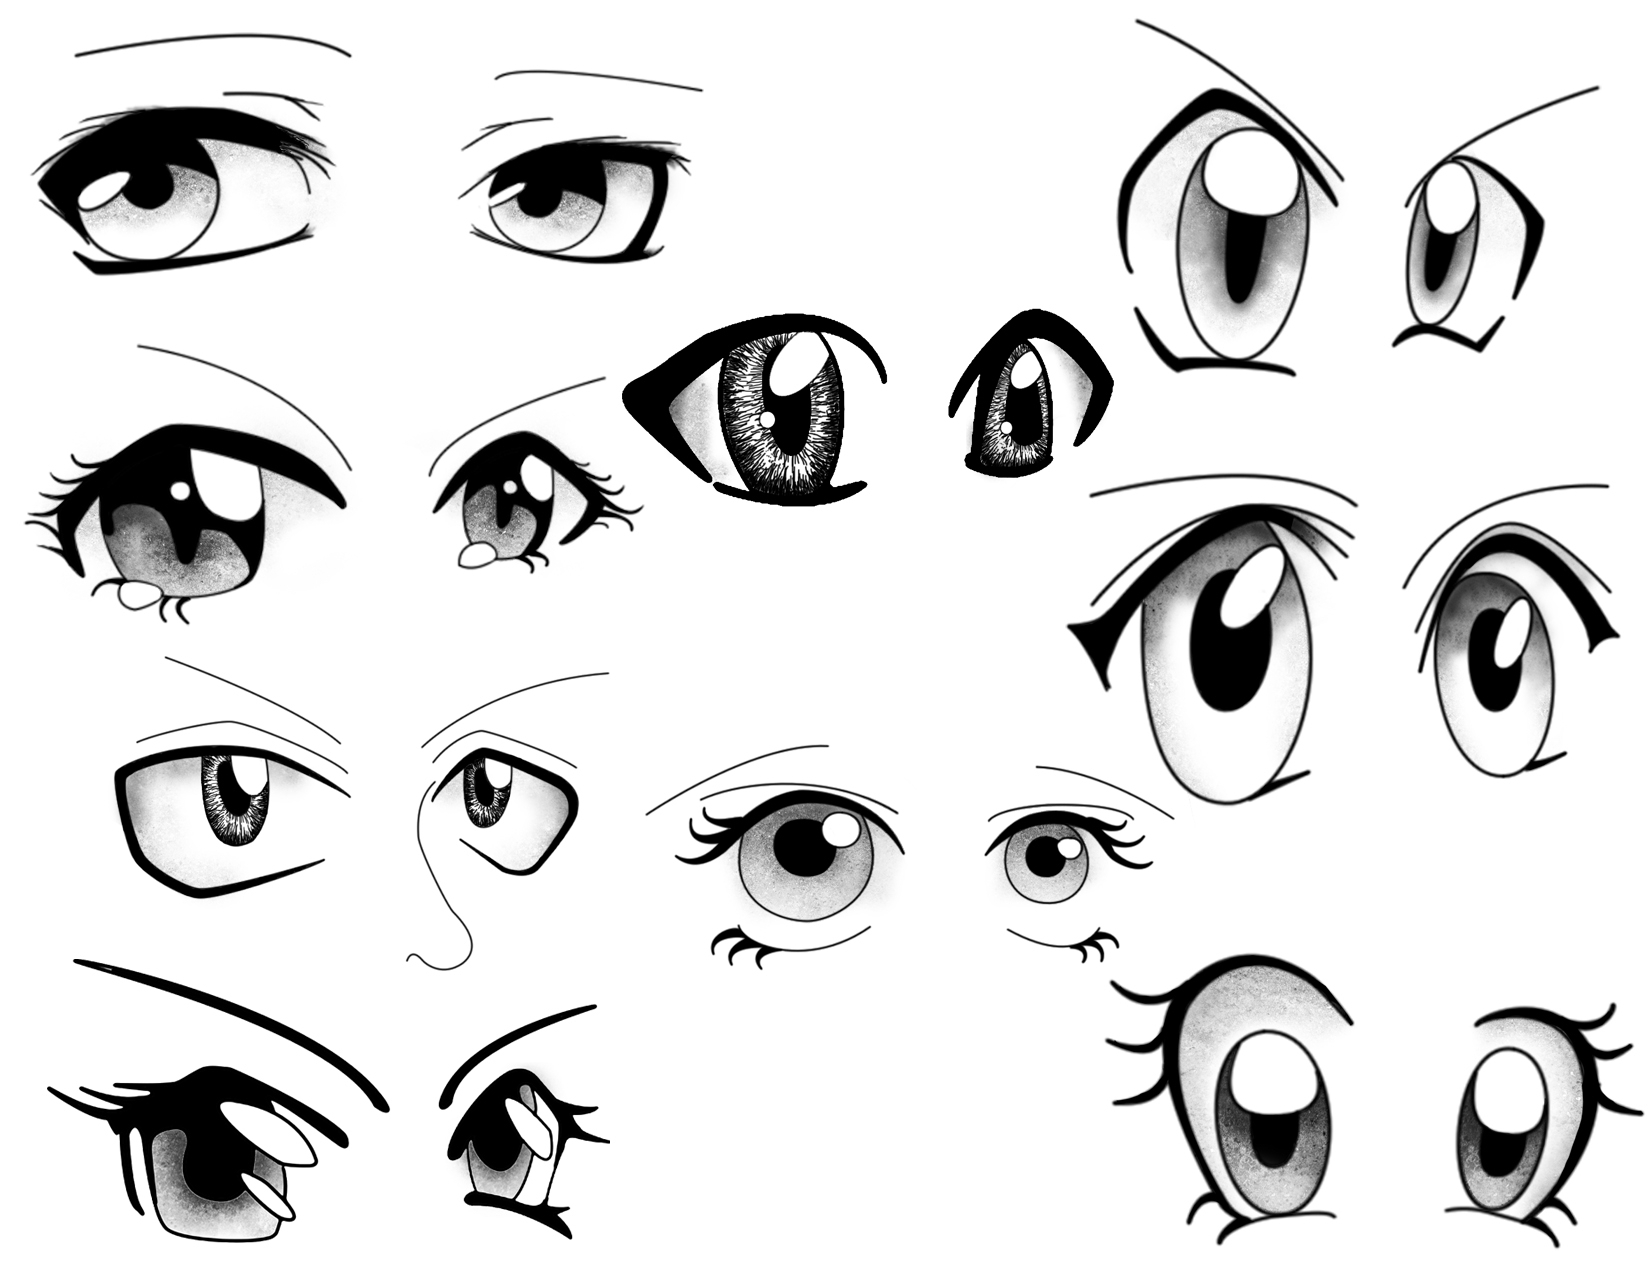 Anime Eyes Drawing at GetDrawings com   Free for personal use Anime     1650x1275 Cartoon Eyes Drawing How To Draw Anime Eyes  Stepstep  Anime Eyes